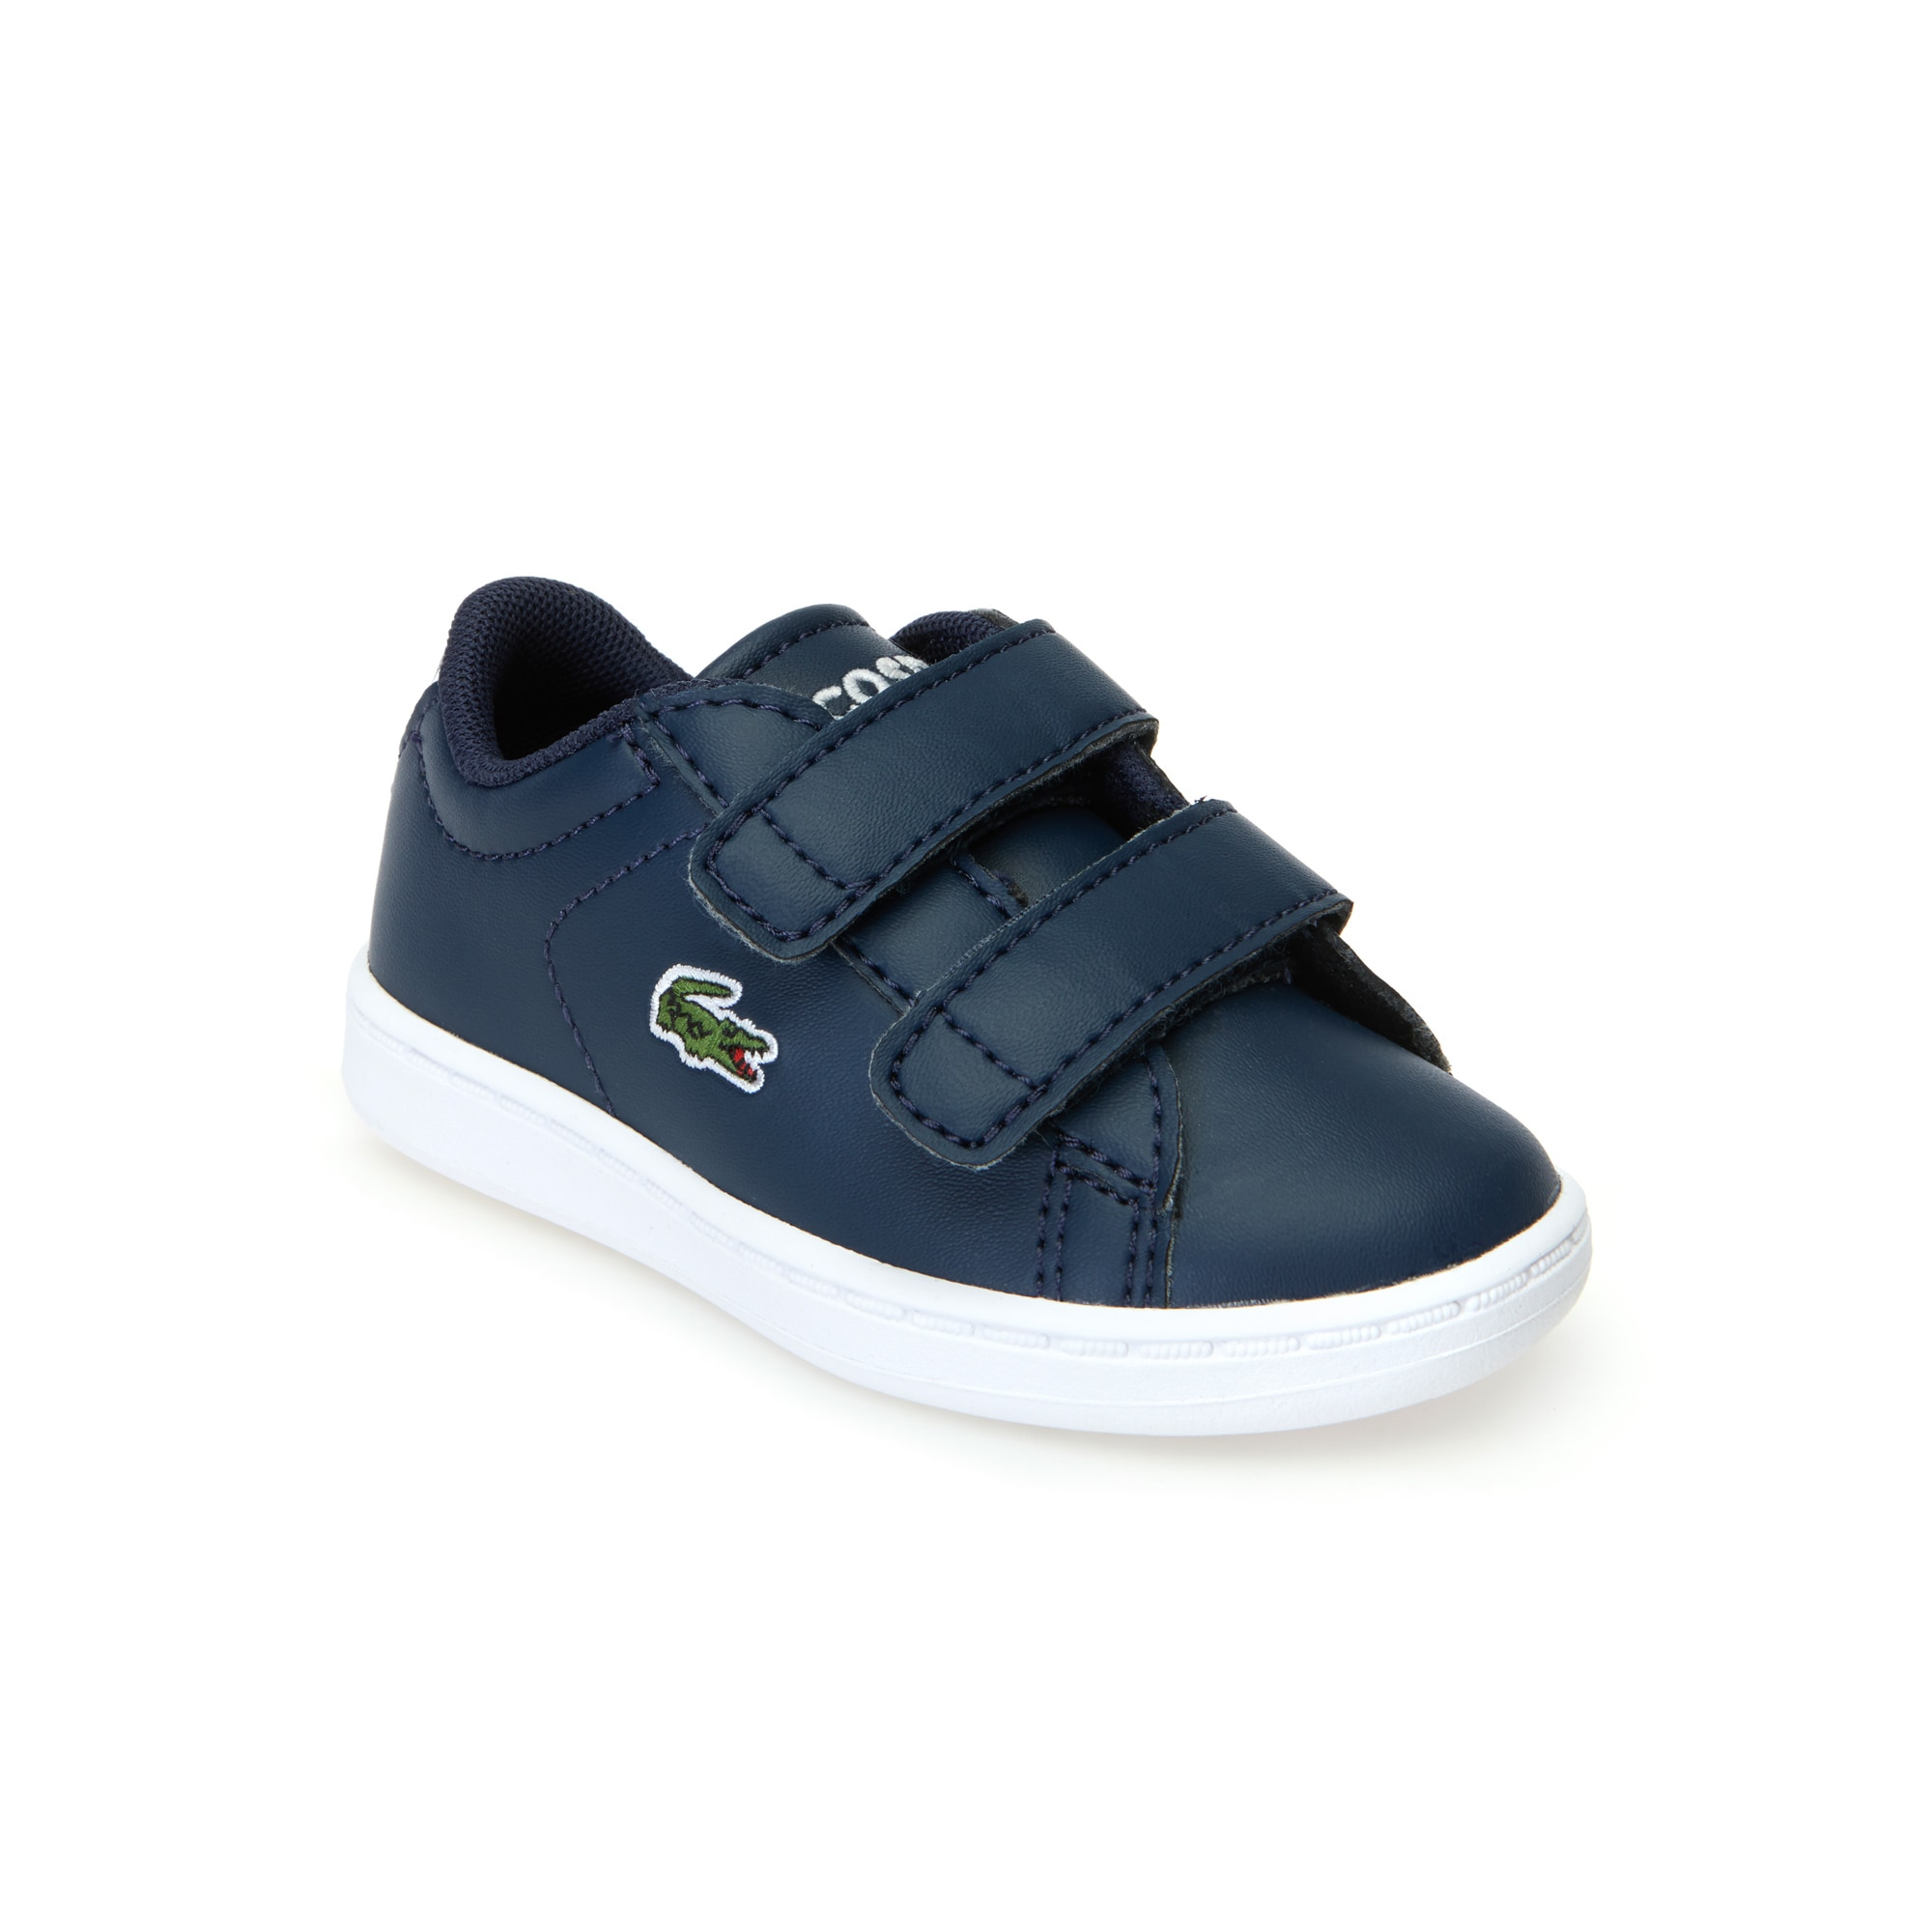 Infants' Carnaby Evo Hook and loop Strap Trainers